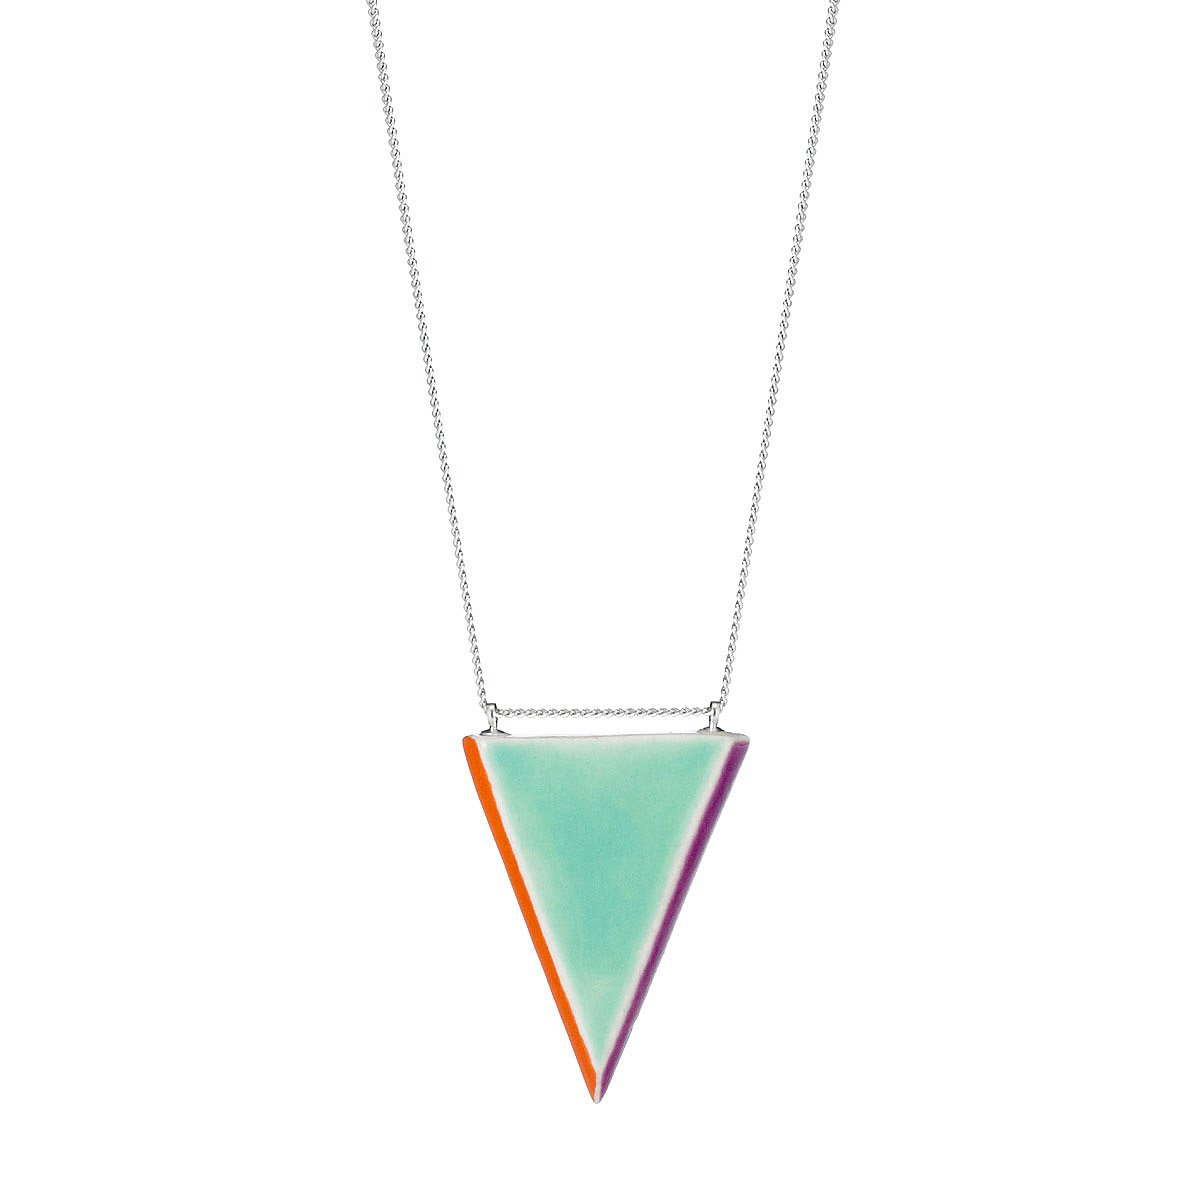 Prism pendant ceramic jewelry porcelain uncommongoods prism pendant 1 thumbnail aloadofball Image collections